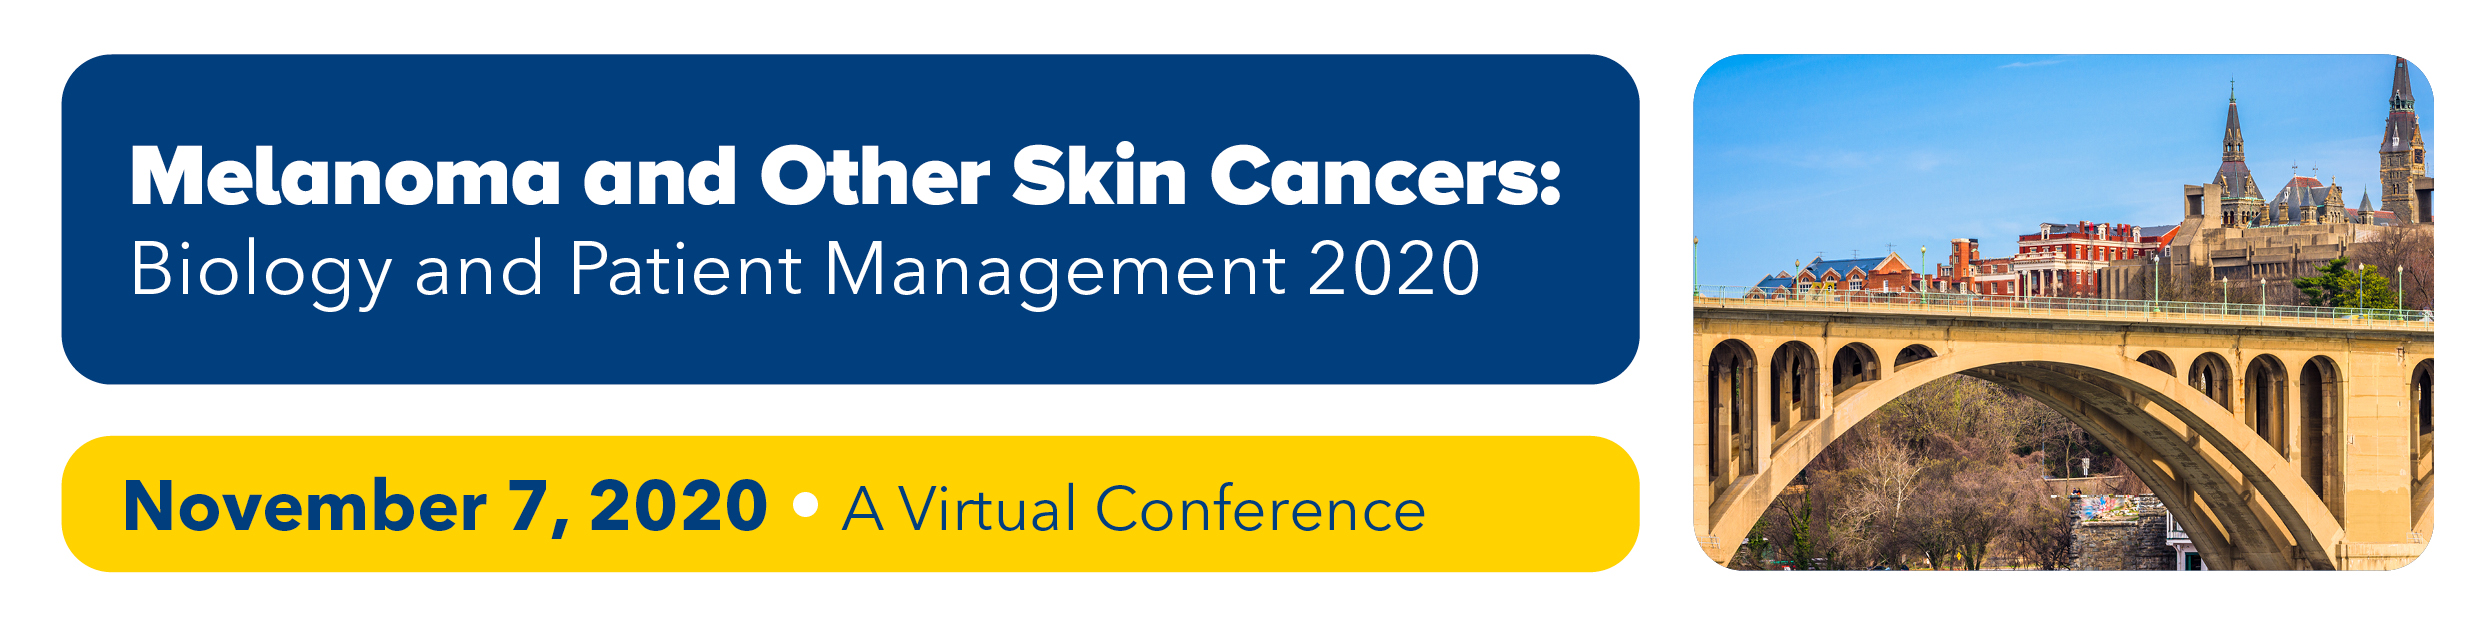 Melanoma and Other Skin Cancers: Biology and Patient Management 2020 Banner